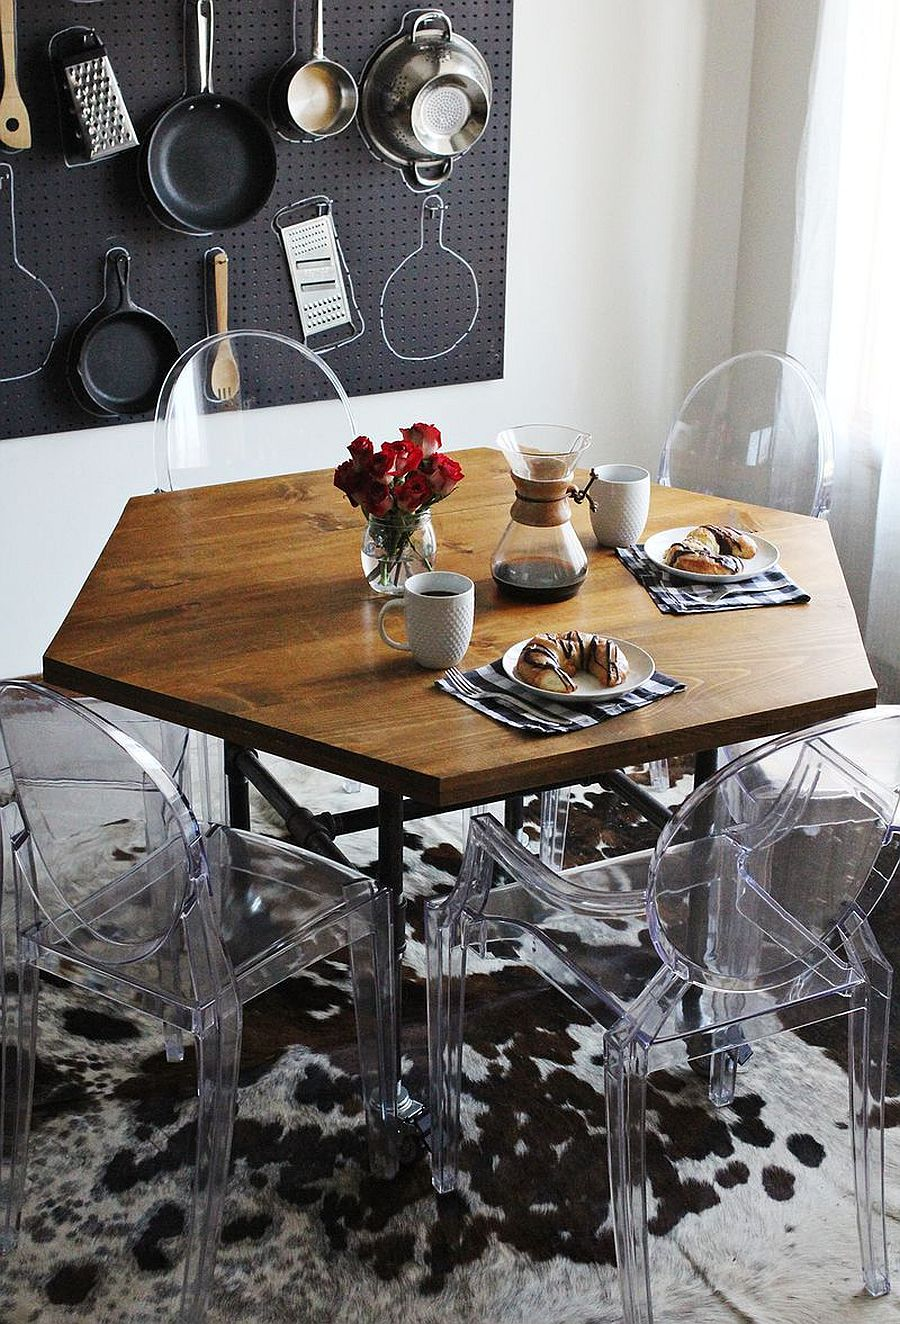 DIY hexagon dining table with industrial style legs